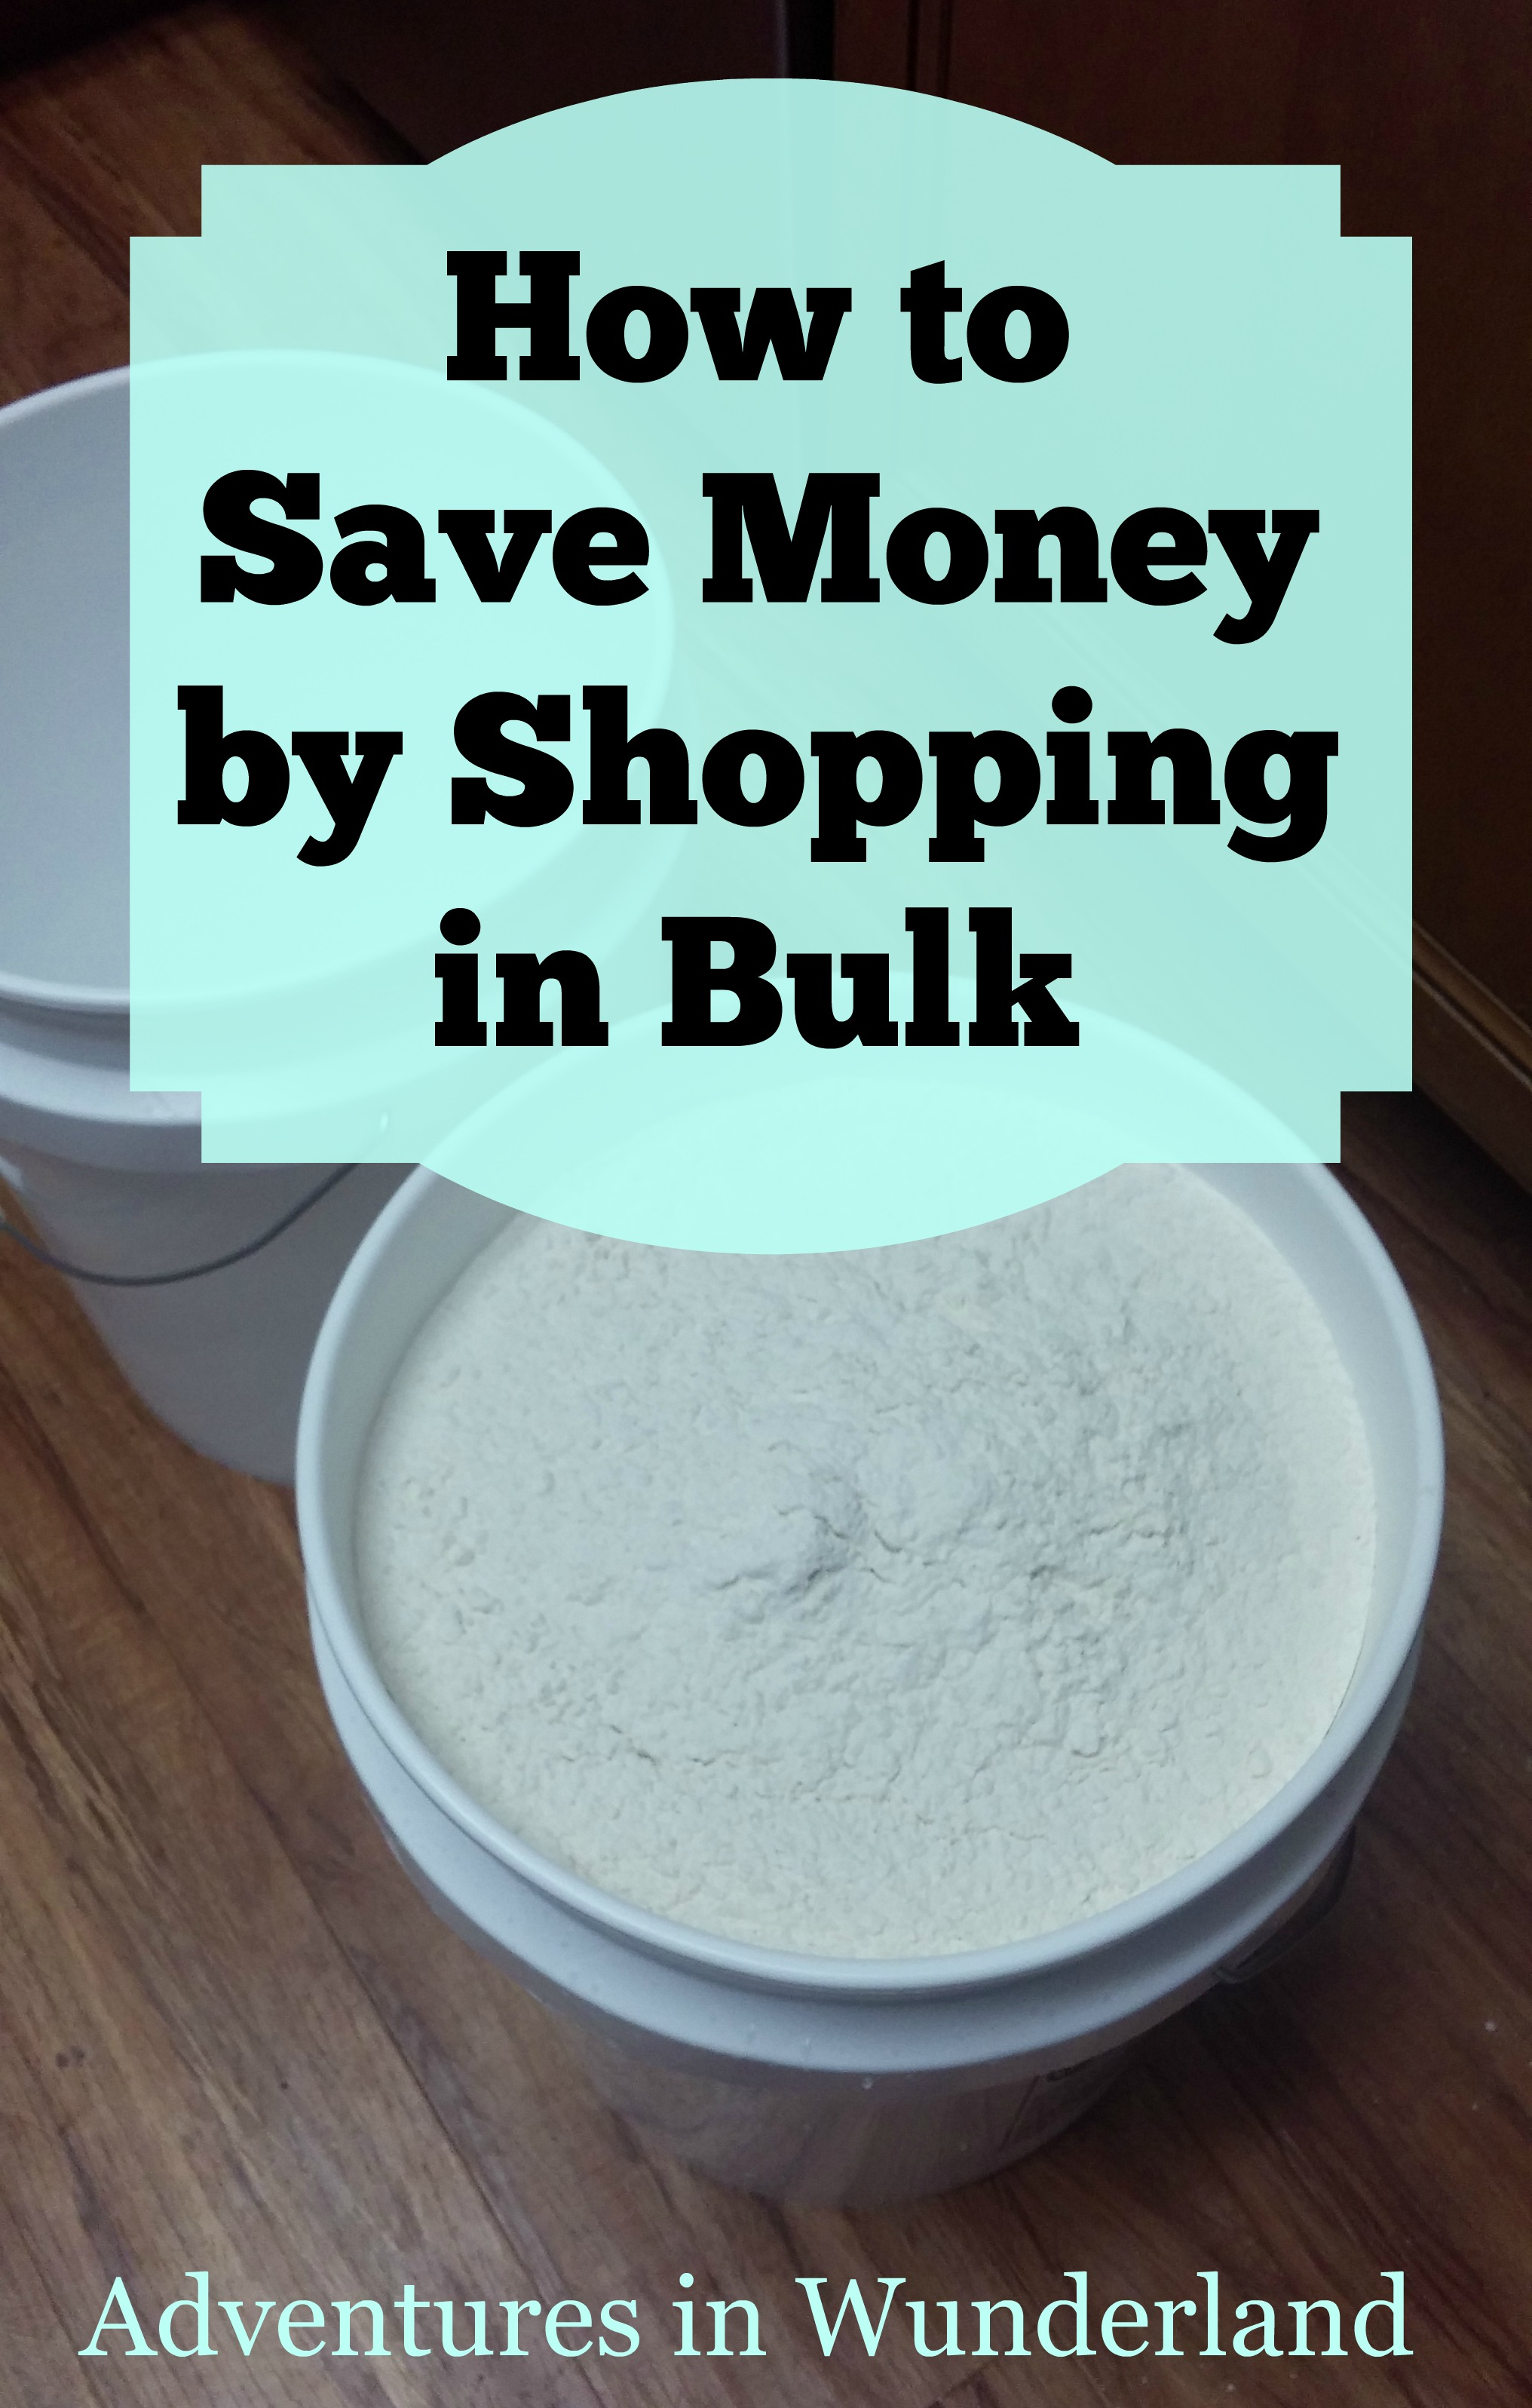 How to Save Money by Shopping in Bulk